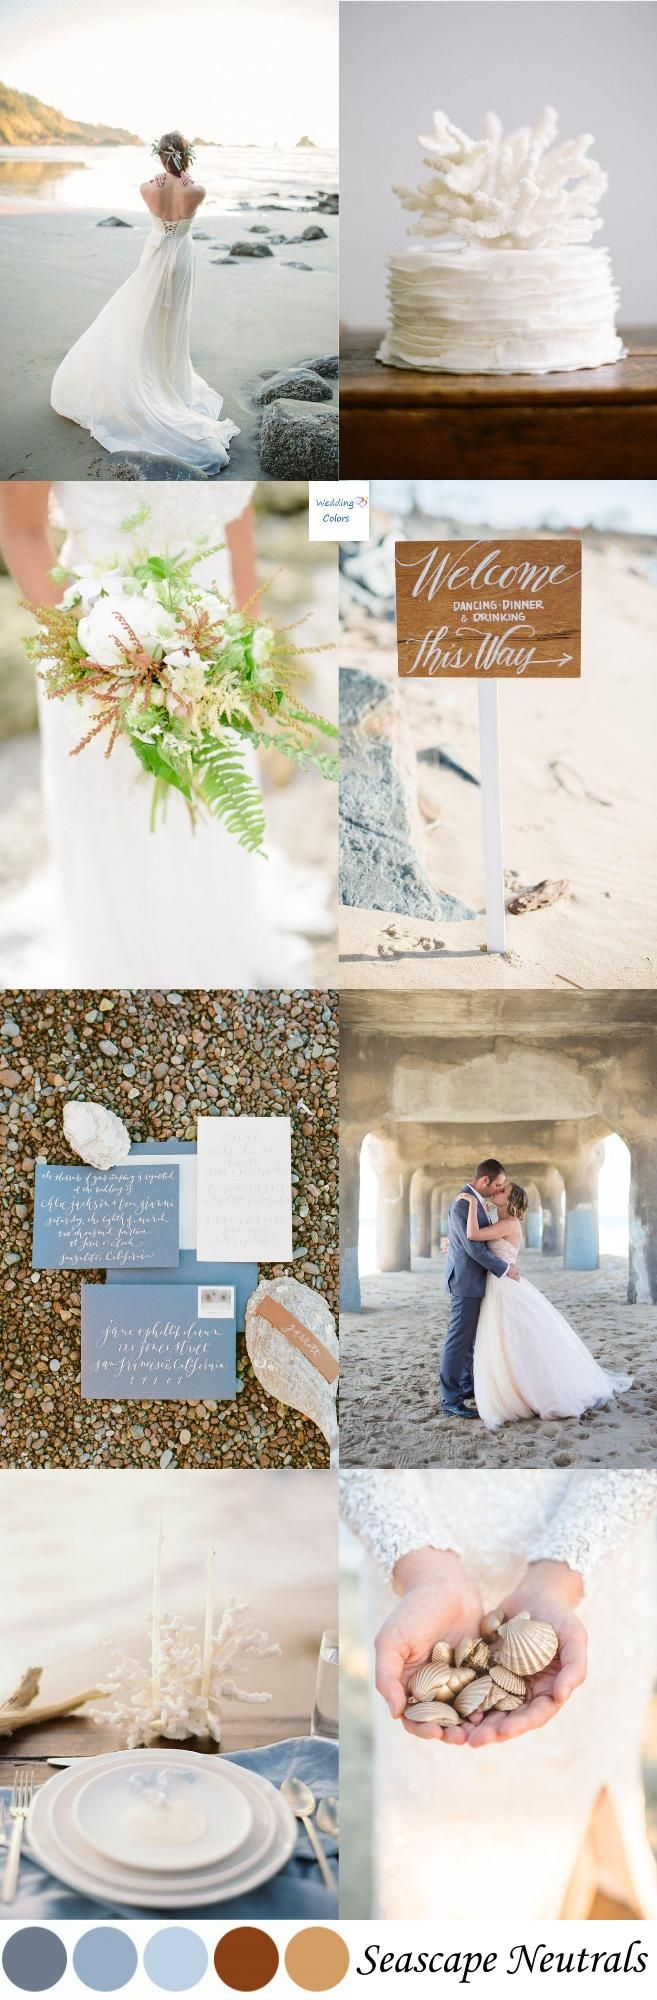 The 145 best Wedding Colors, Schemes and Palettes images on ...